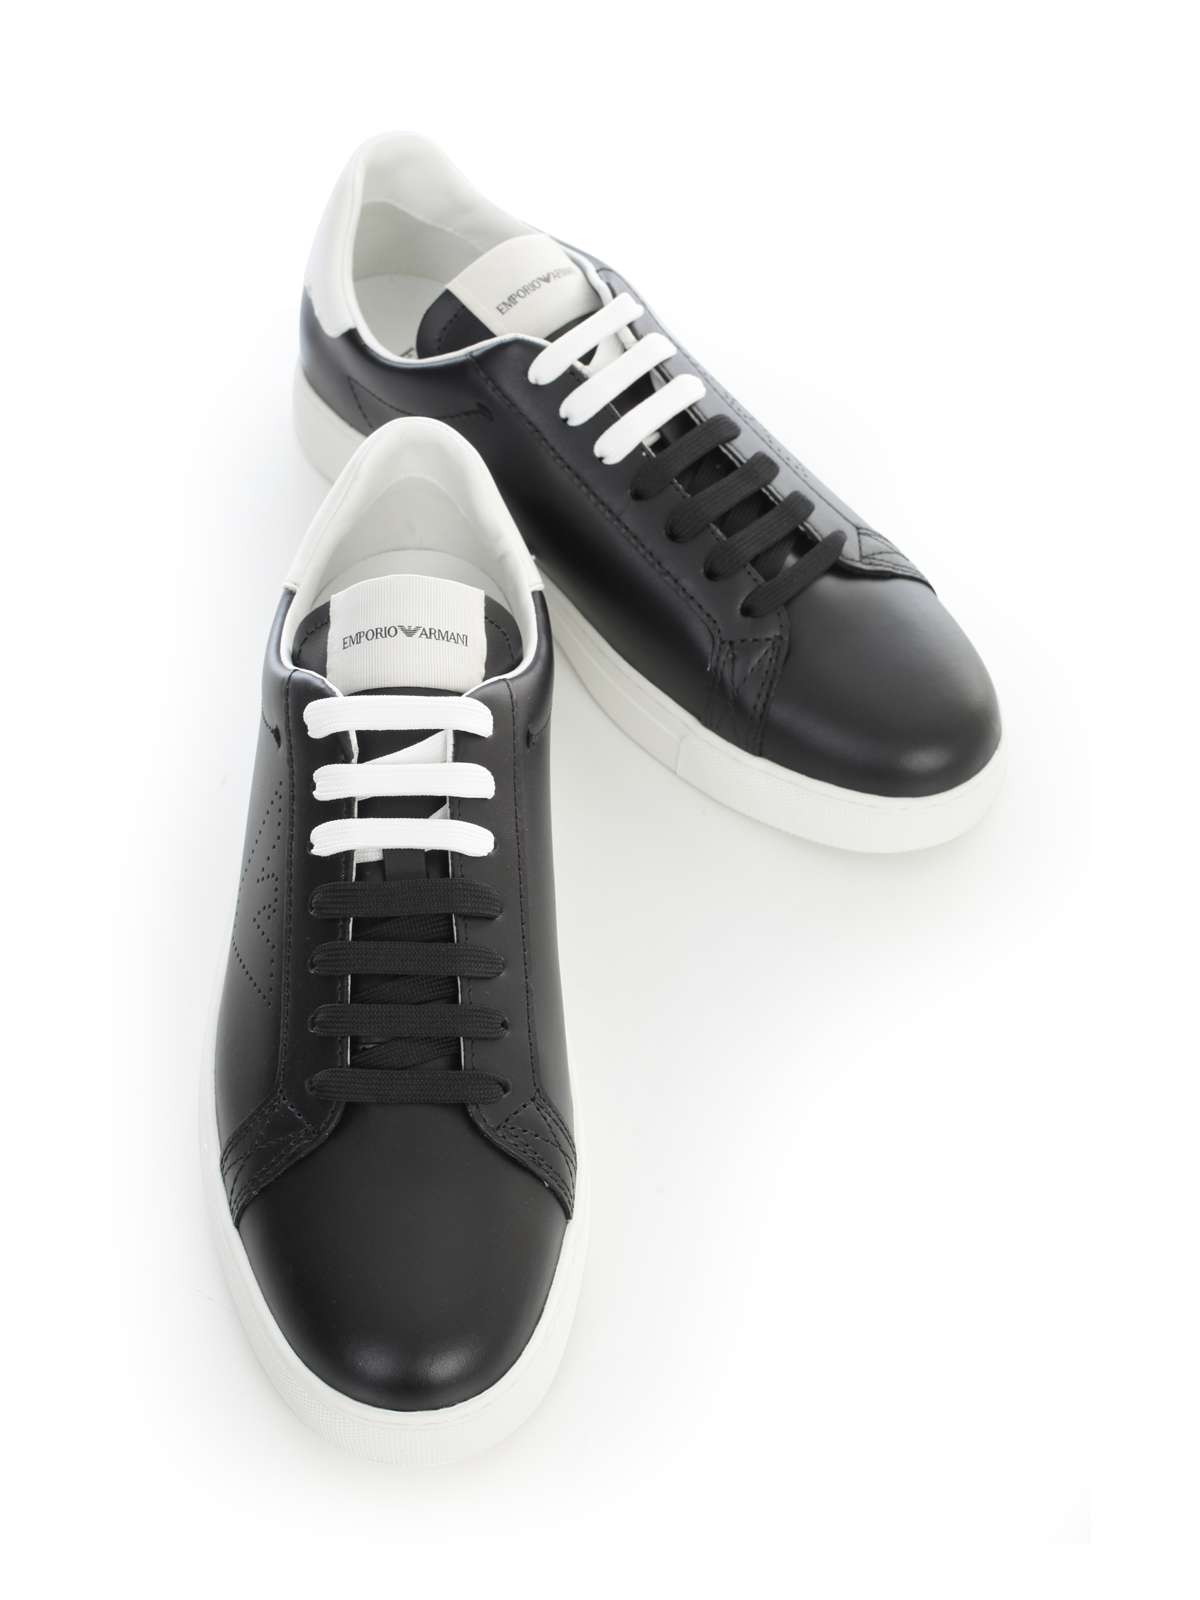 Picture of Emporio Armani Shoes